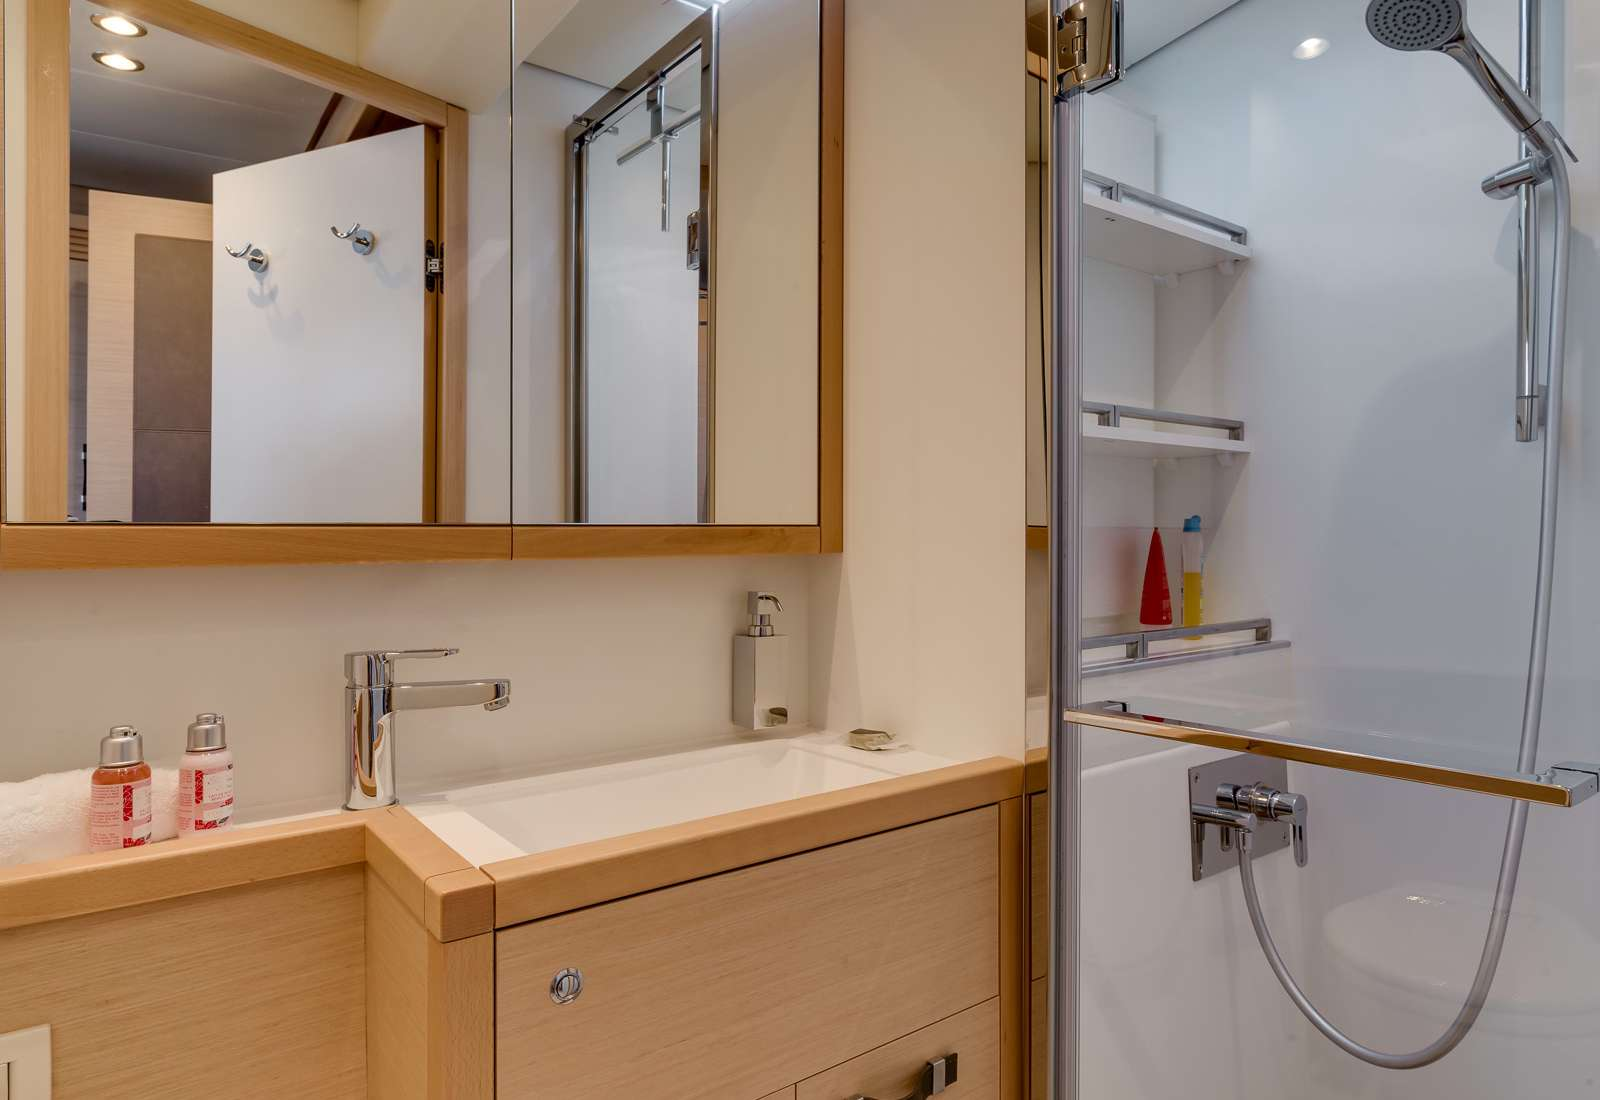 Ensuite bathroom of one of the double bed cabins